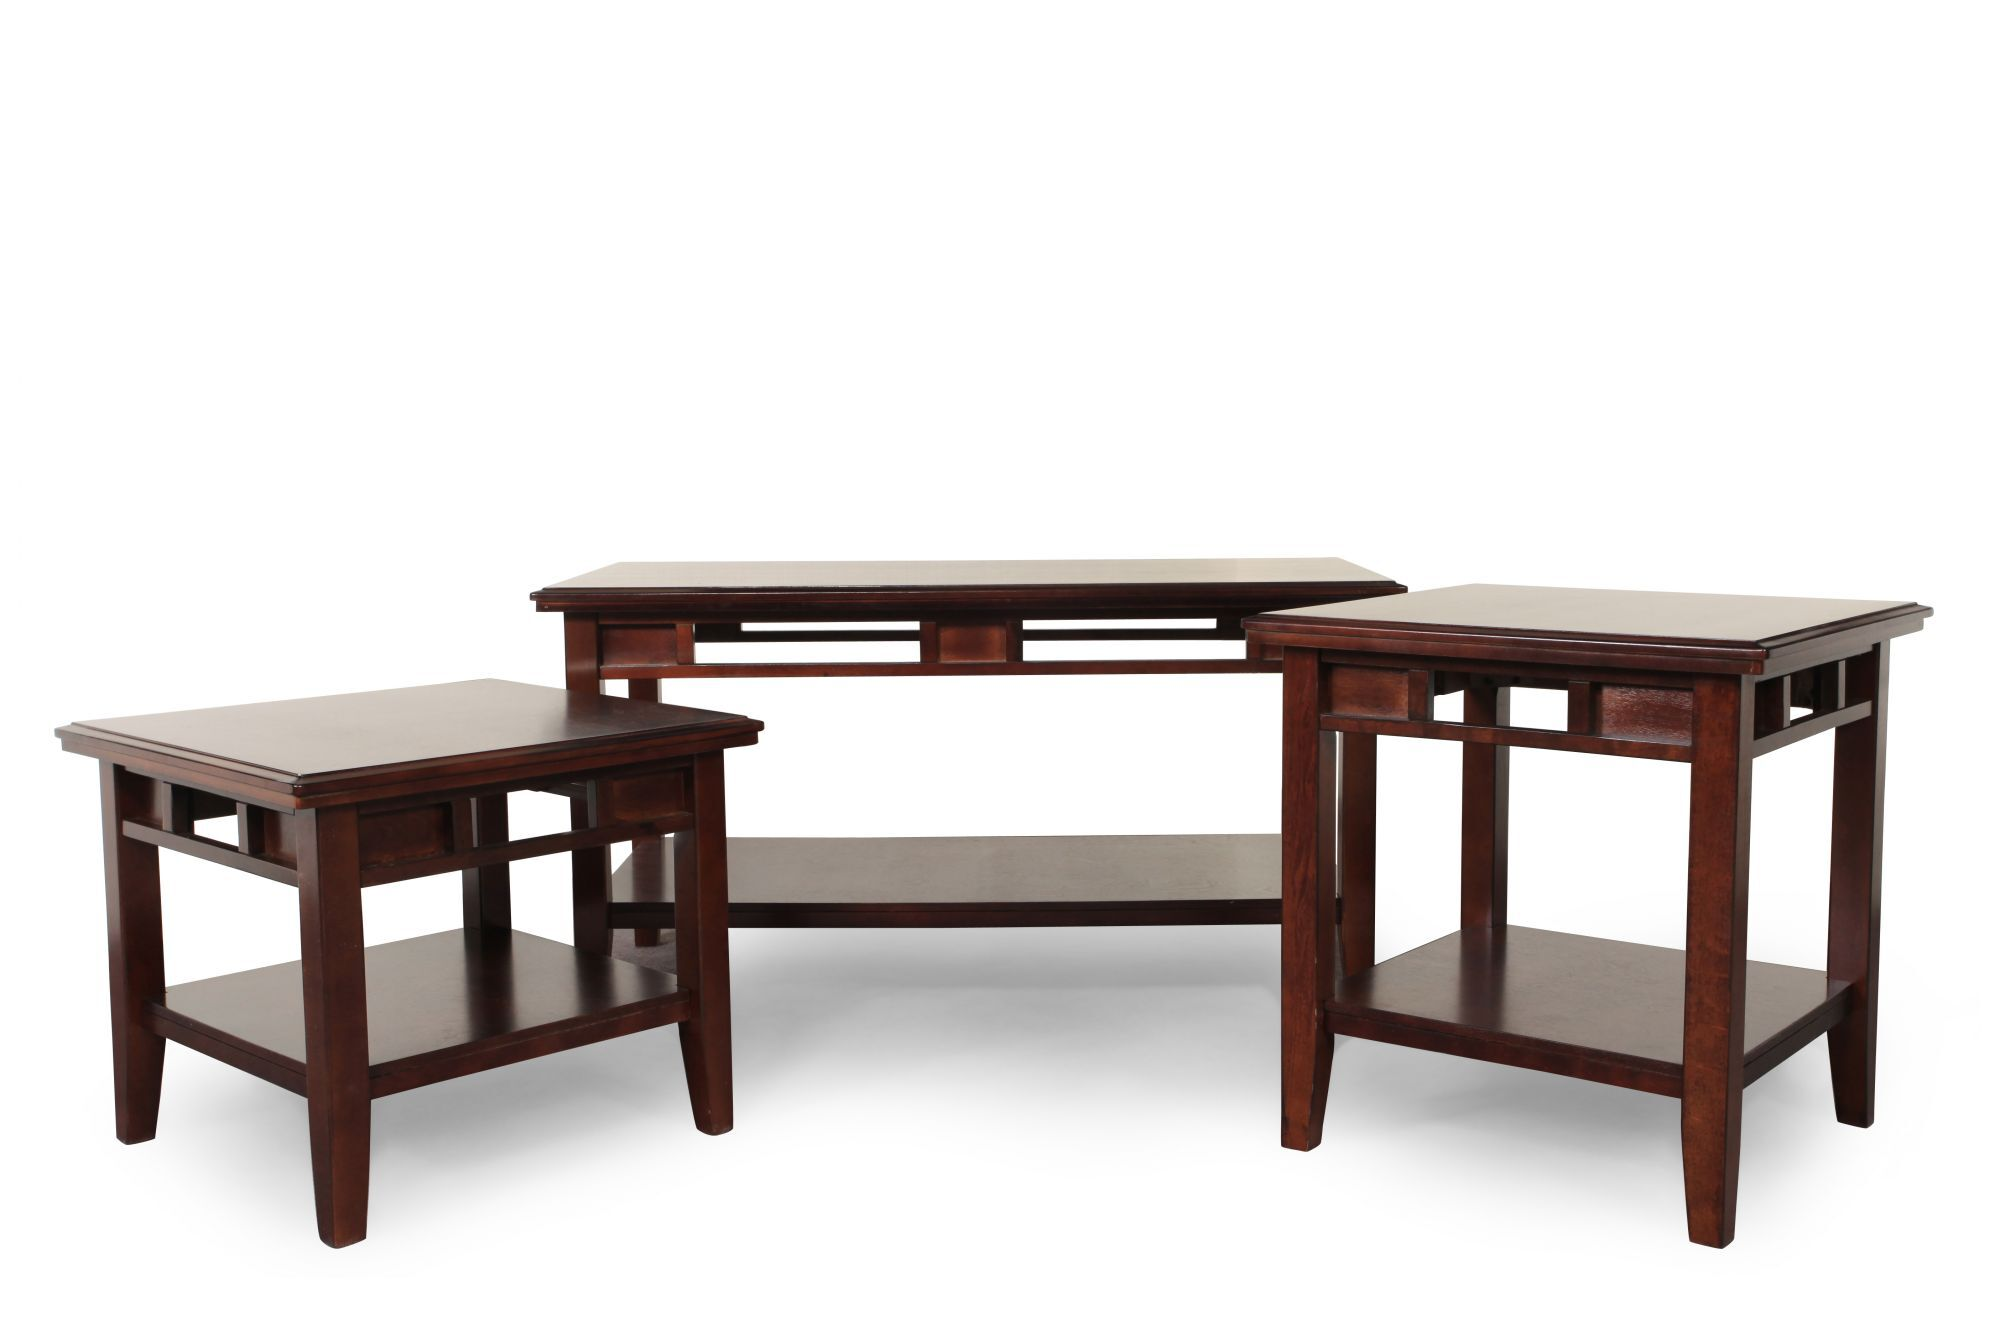 Three Piece Contemporary Coffee Table Set In Dark Brown